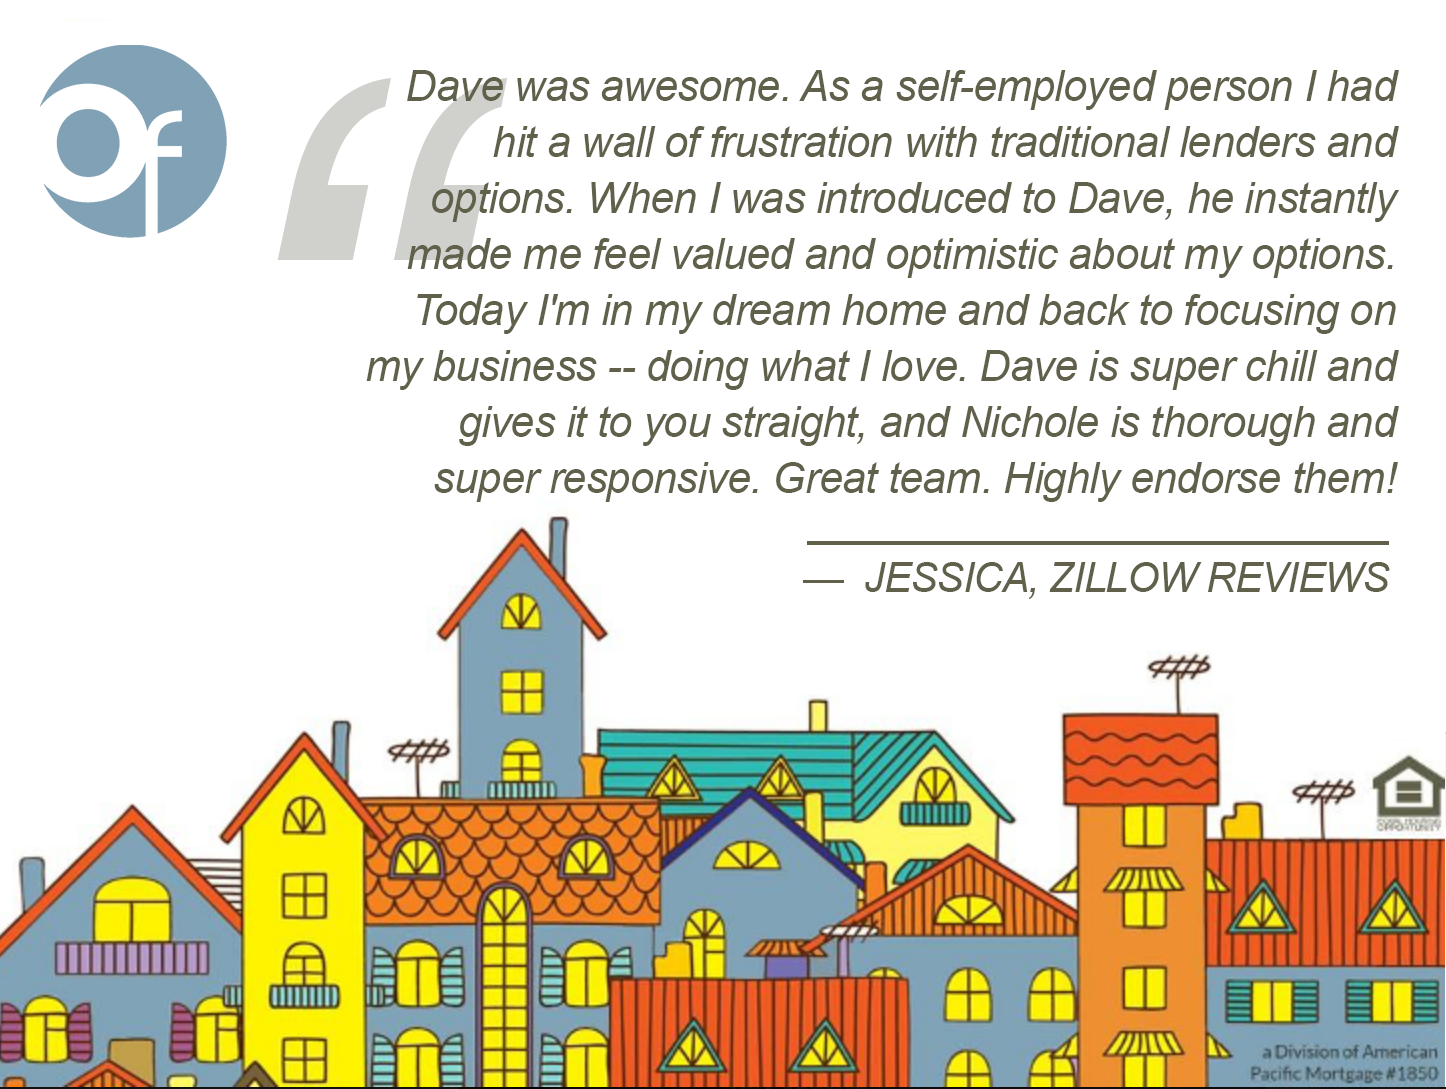 Dave was awesome. As a self-employed person I had hit a wall of frustration with traditional lenders and options. When I was introduced to Dave, he instantly made me feel valued and optimistic about my options. Today I'm in my dream home and back to focusing on my business -- doing what I love. Dave is super chill and gives it to you straight, and Nichole is thorough and super responsive. Great team. Highly endorse them!